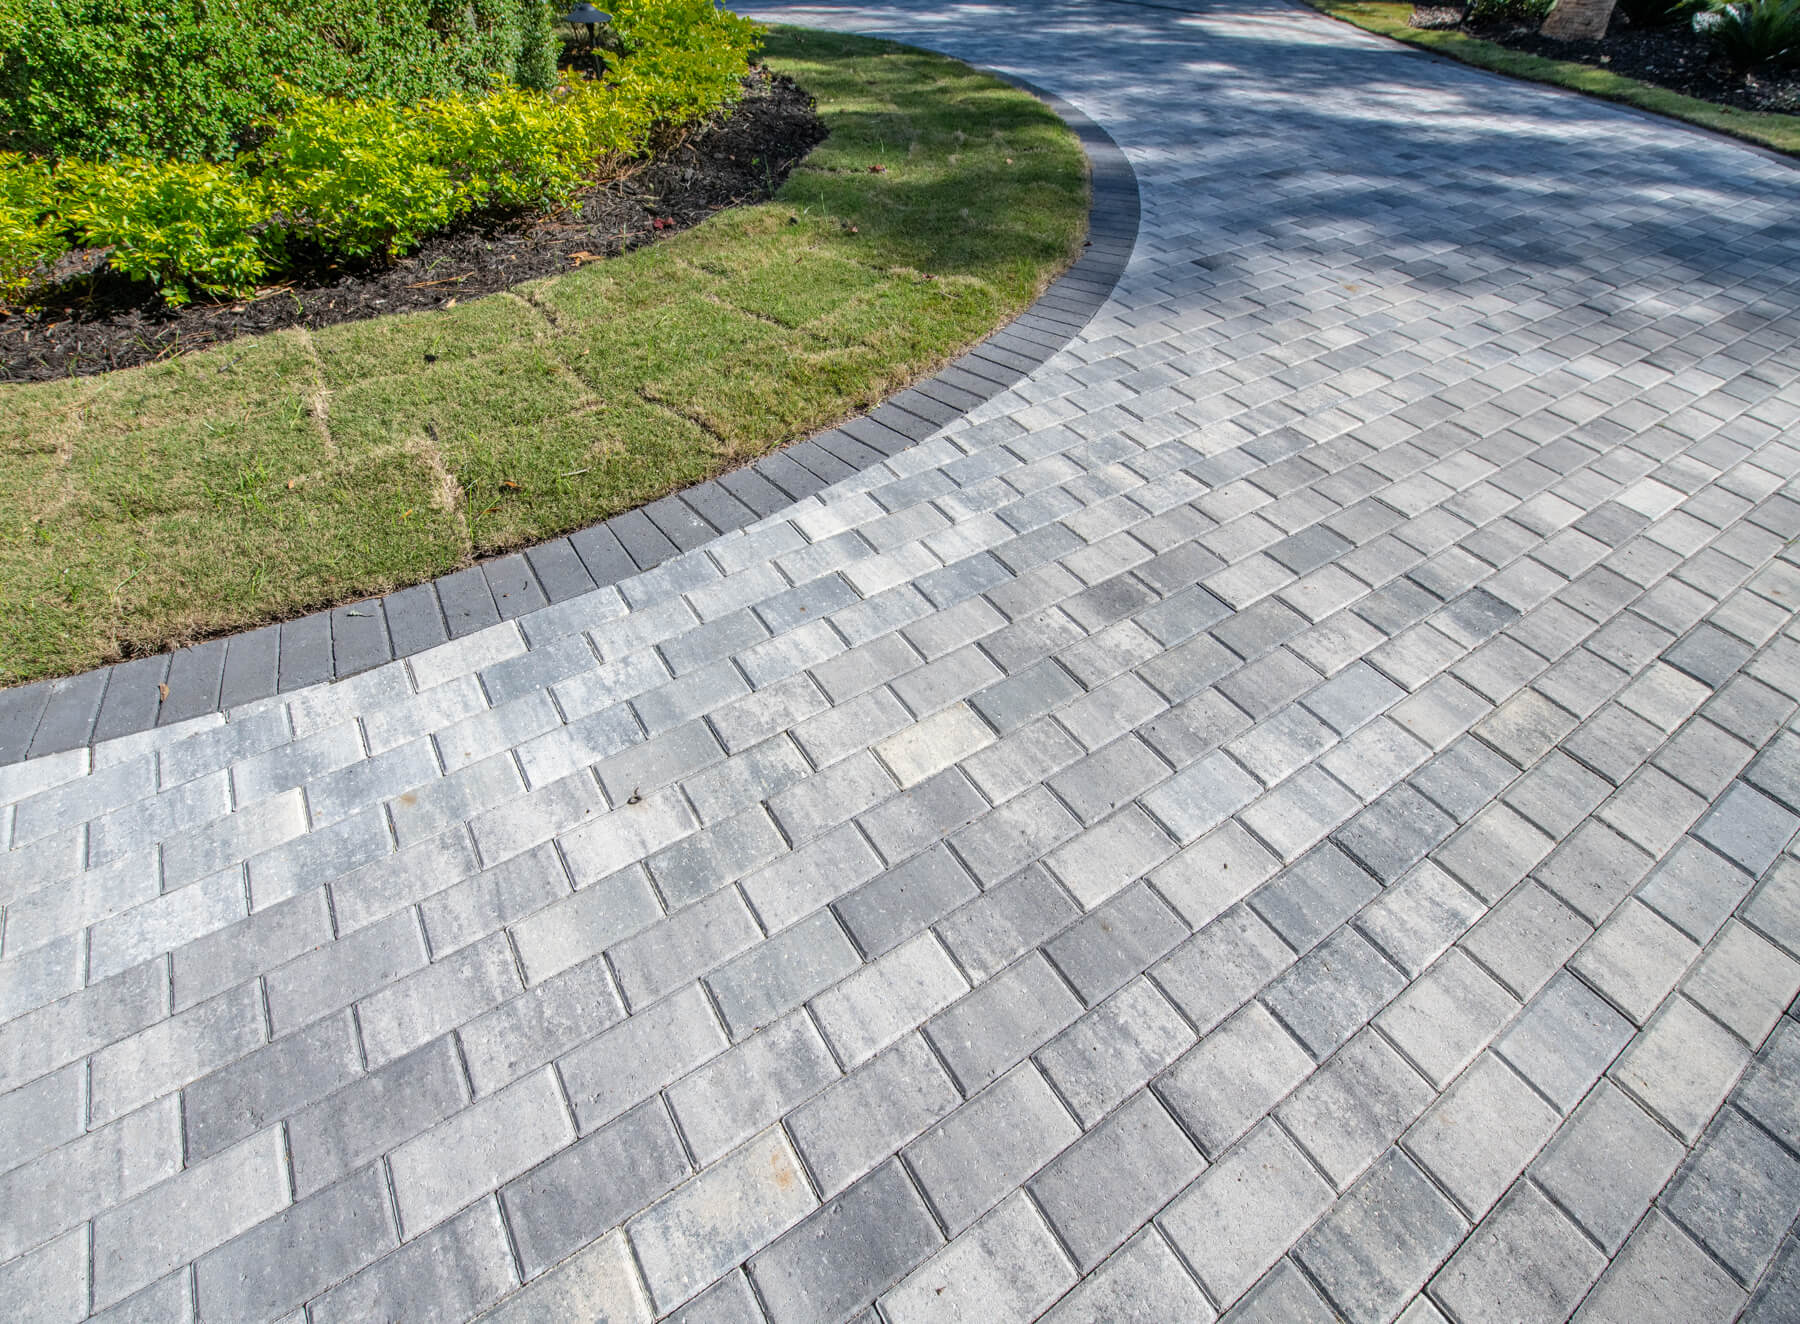 Running Bond - One of the simplest patterns to lay. The pavers are laid in rows, running in the same direction, end to end. Simple & Classic!